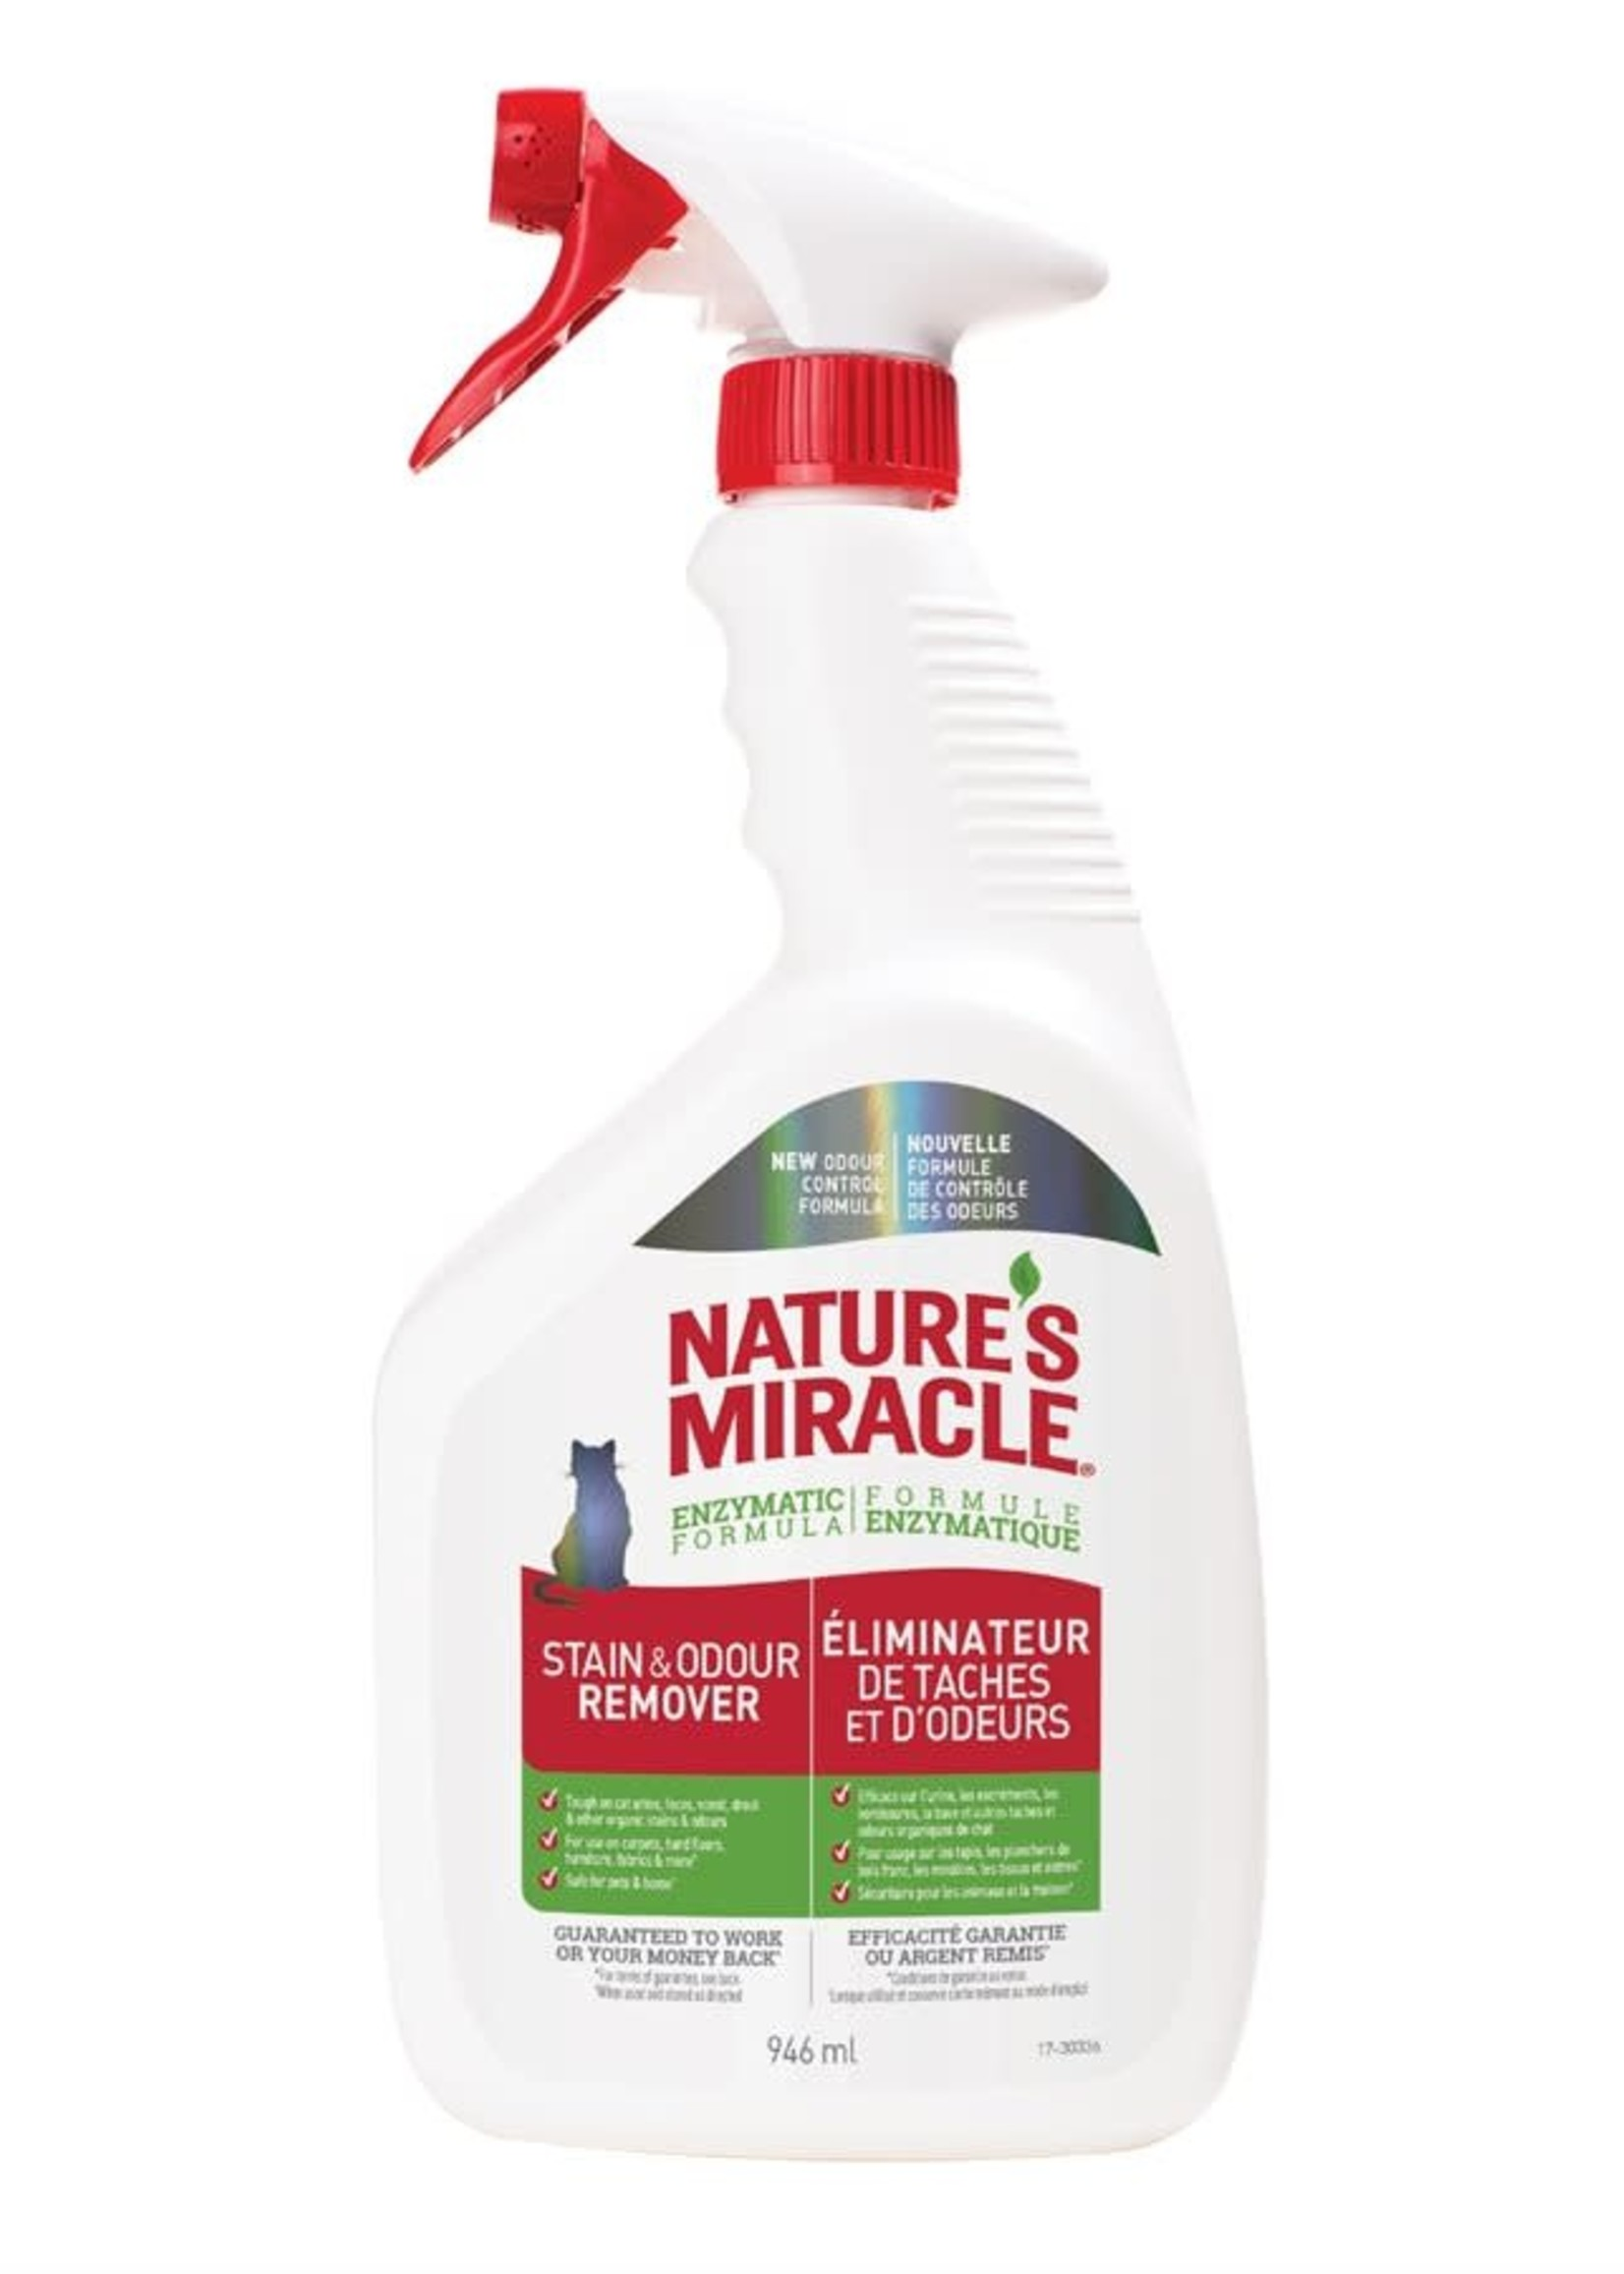 Nature's Miracle® Nature's Miracle Just for Cats Stain And Odor Remover 32oz